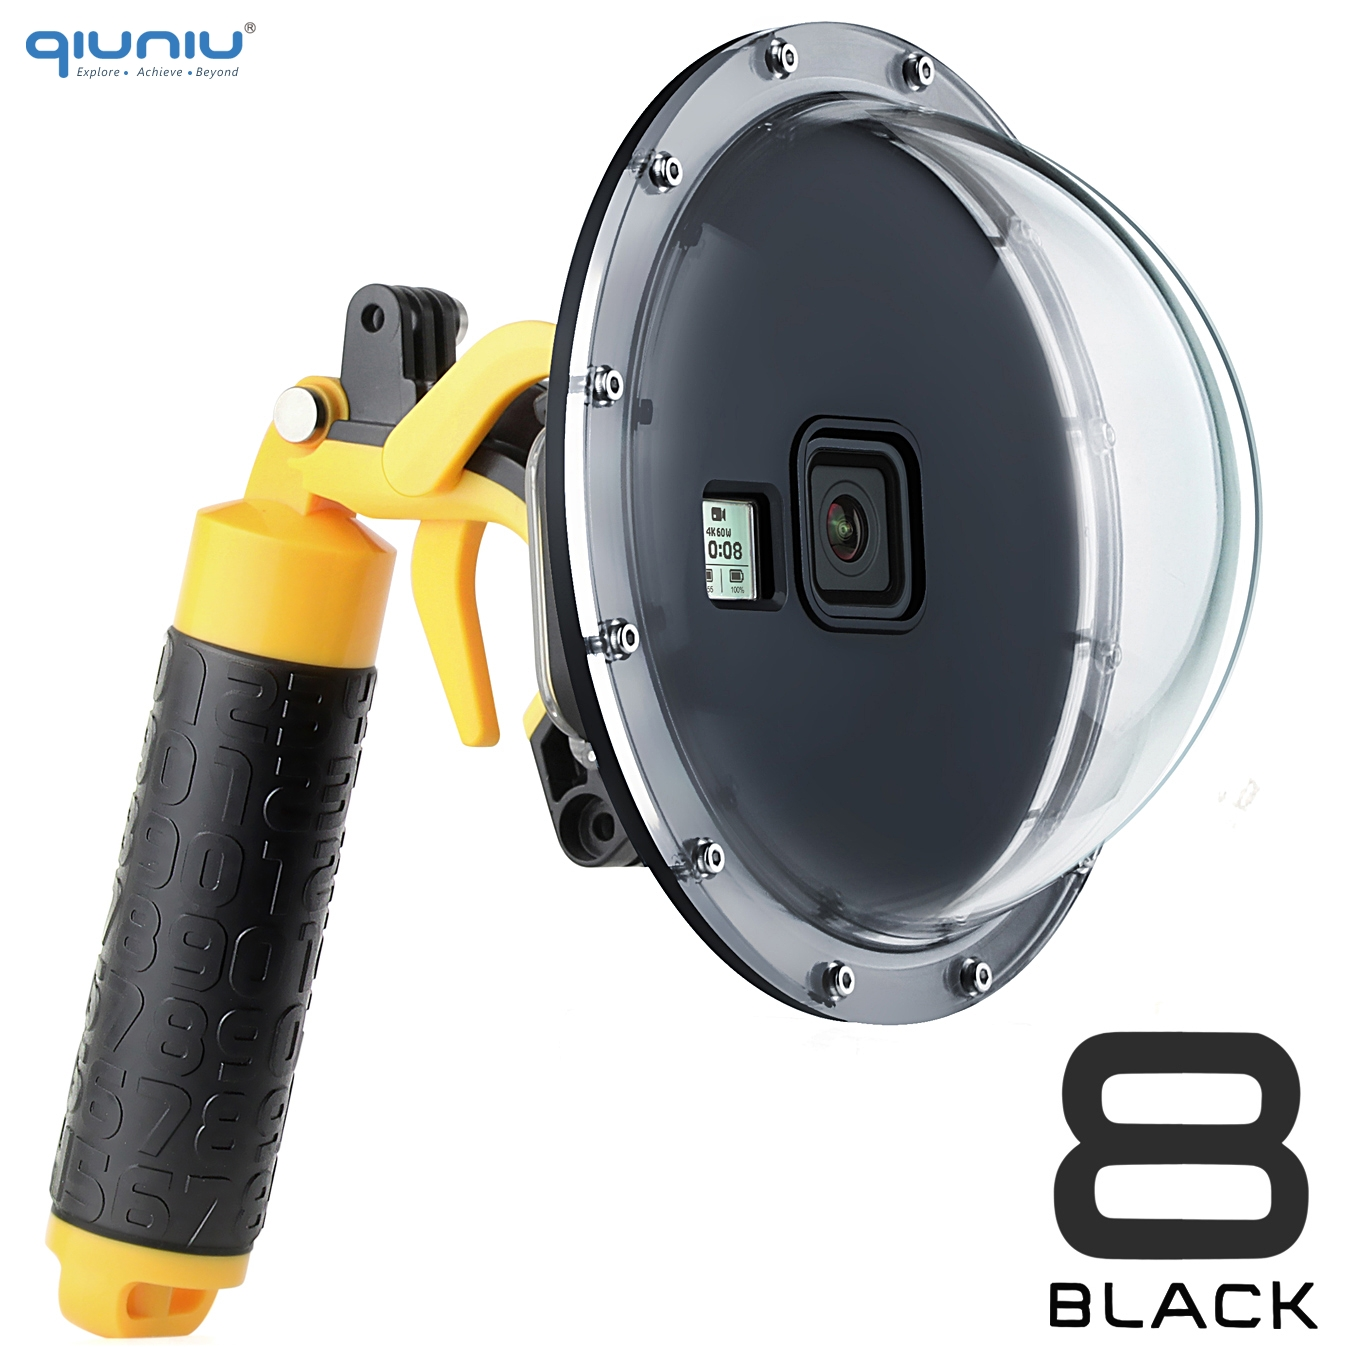 QIUNIU 6   Diving Dome Port Waterproof Housing Case Cover w  Pistol Trigger Float Grip for GoPro Hero 8 Black Go Pro 8 Accessory